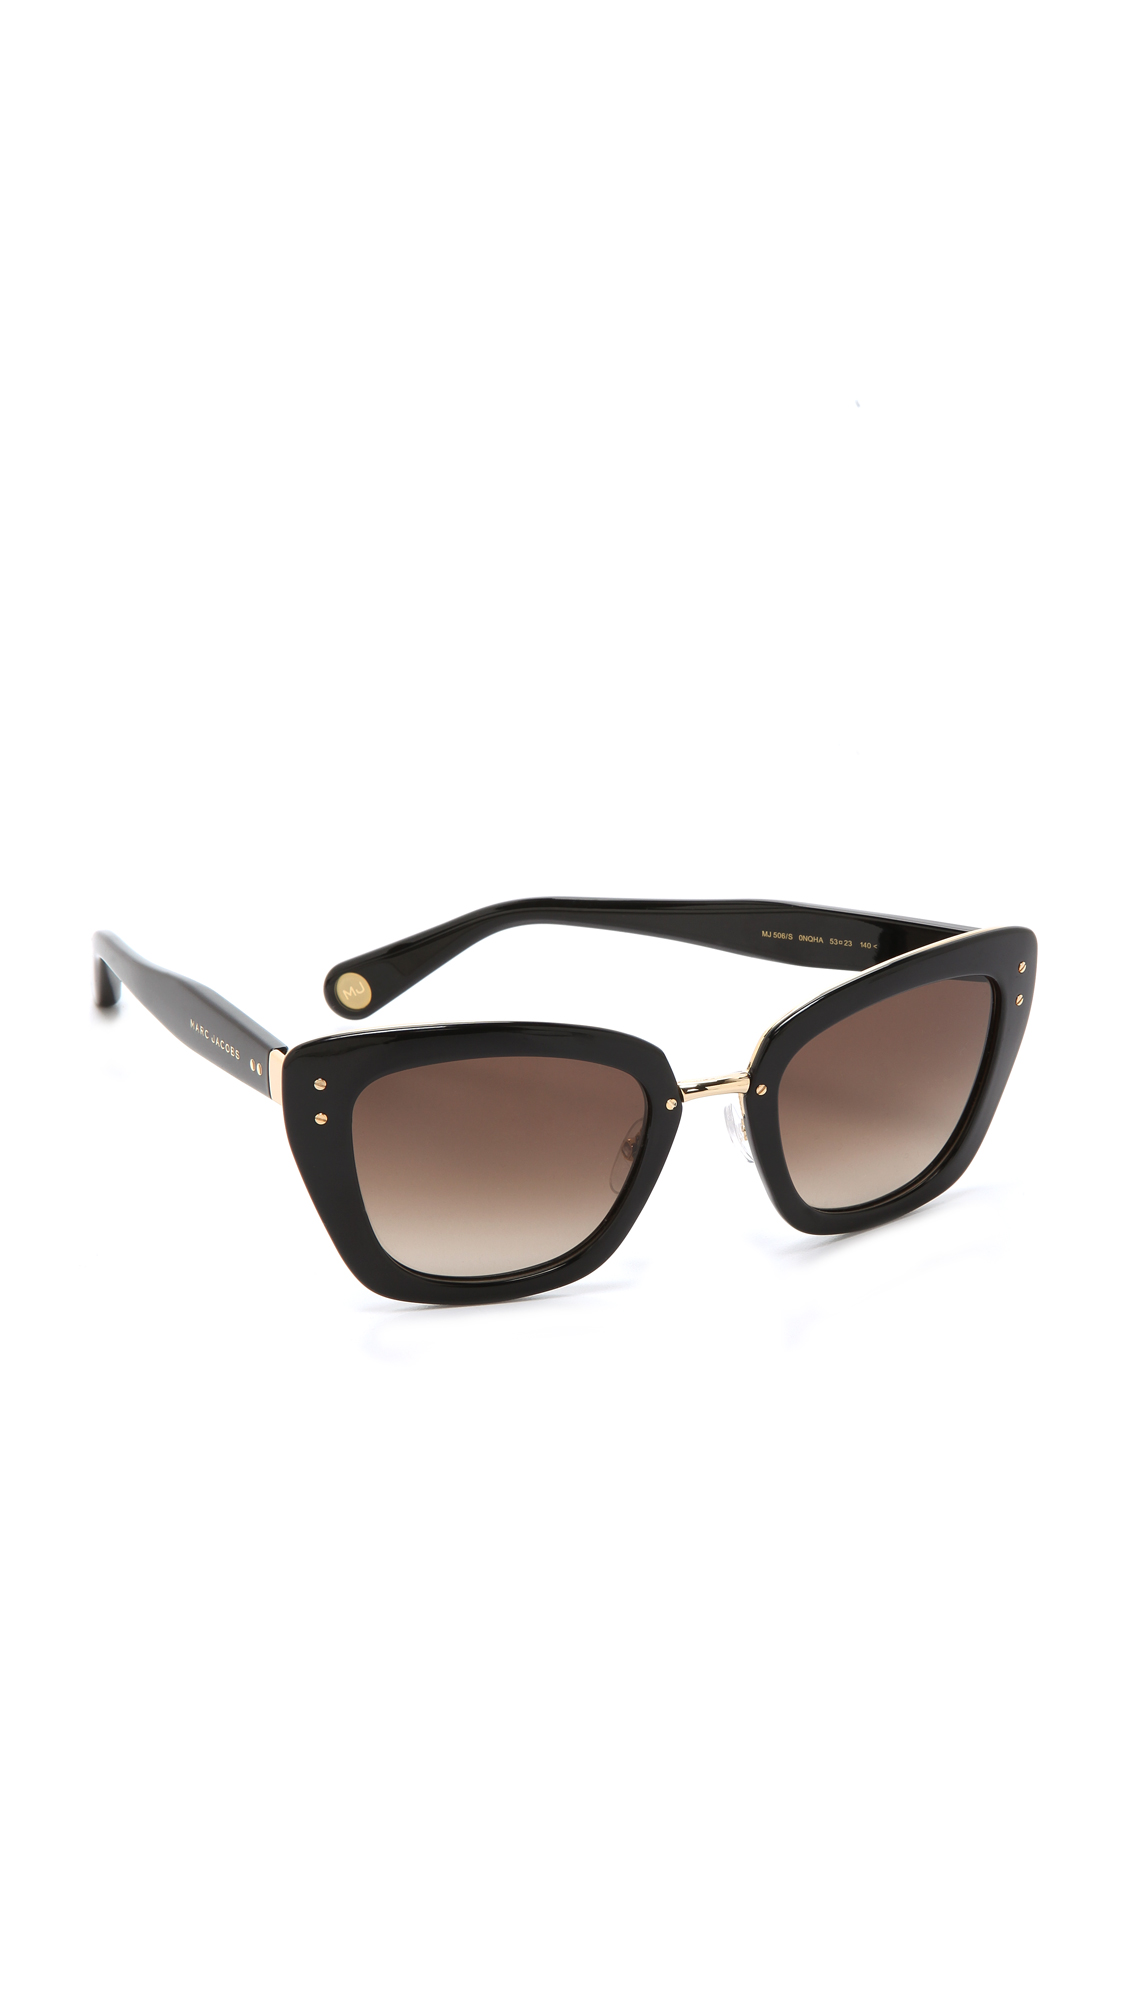 Thick Frame Glasses Black : Marc jacobs Thick Frame Sunglasses - Gold/Black/Brown ...